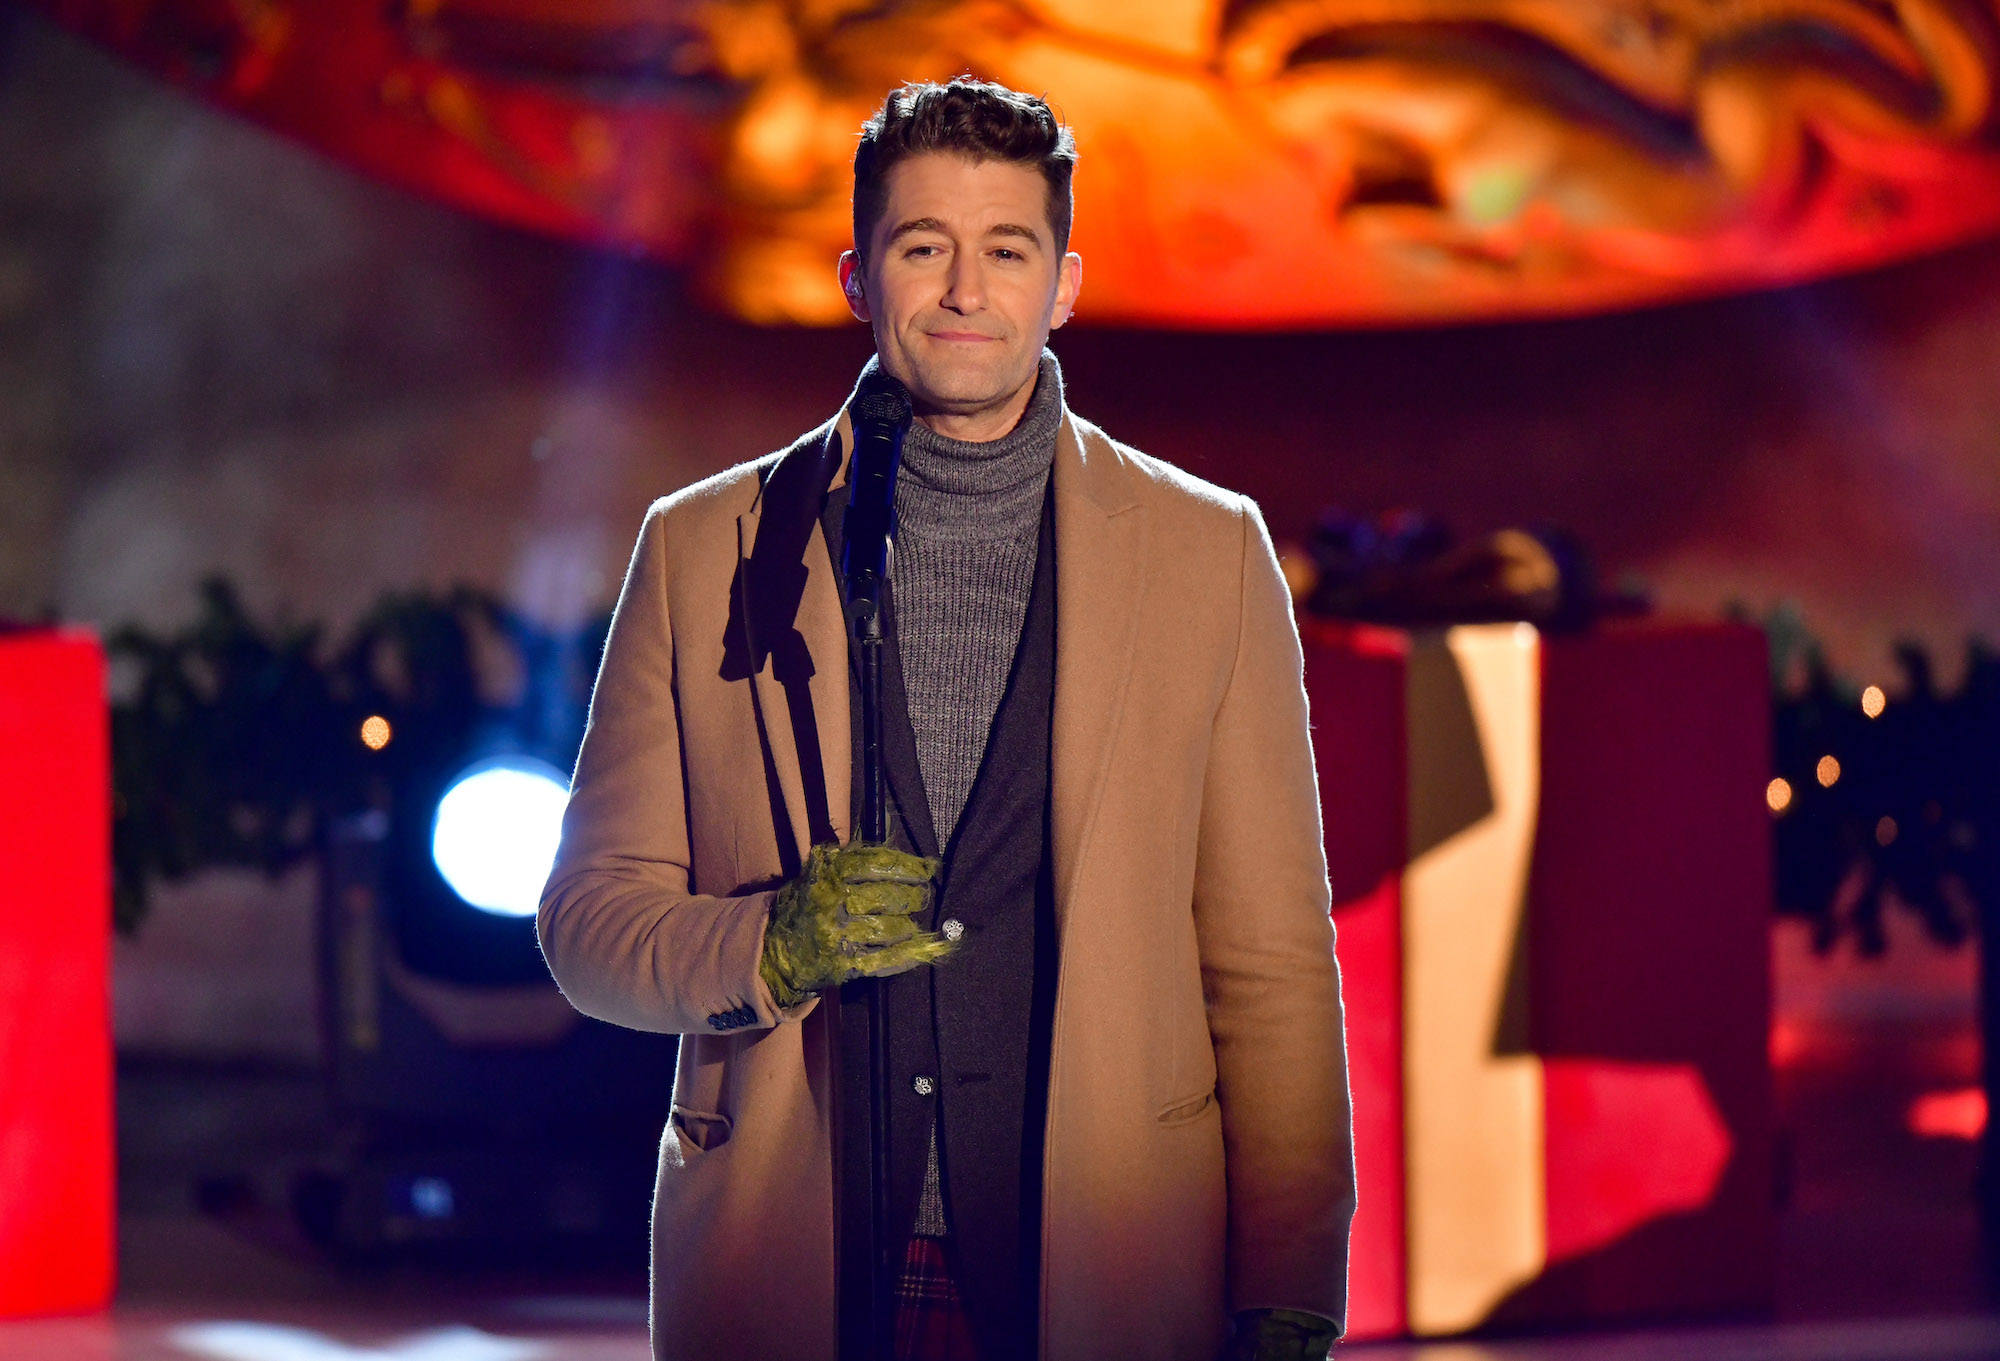 Matthew Morrison performs at the 88th Annual Rockefeller Center Christmas Tree Lighting on Dec. 1, 2020